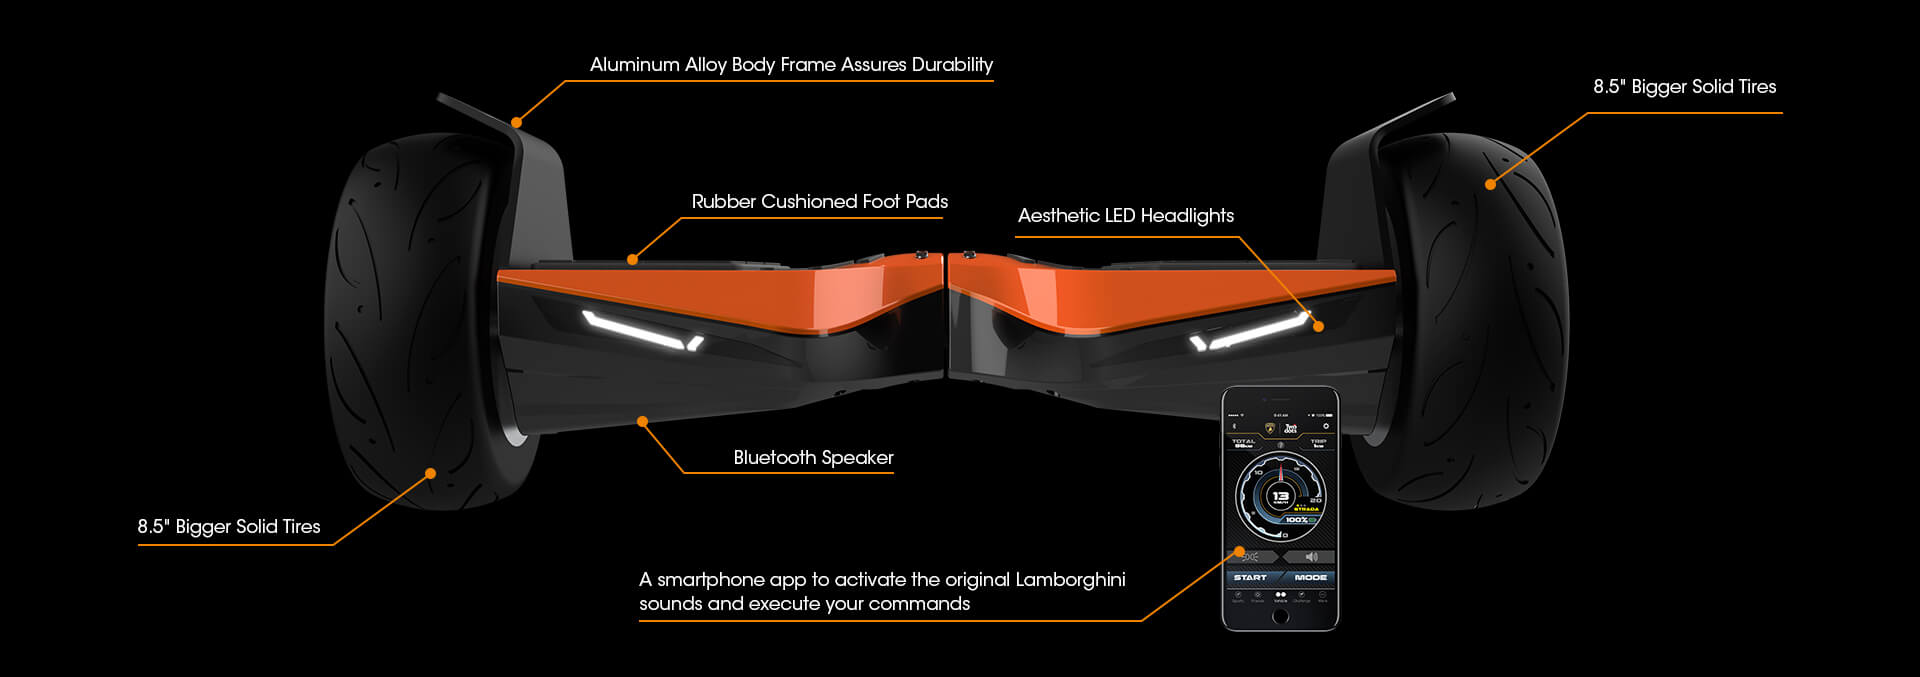 Features of Lamborghini Hoverboards​